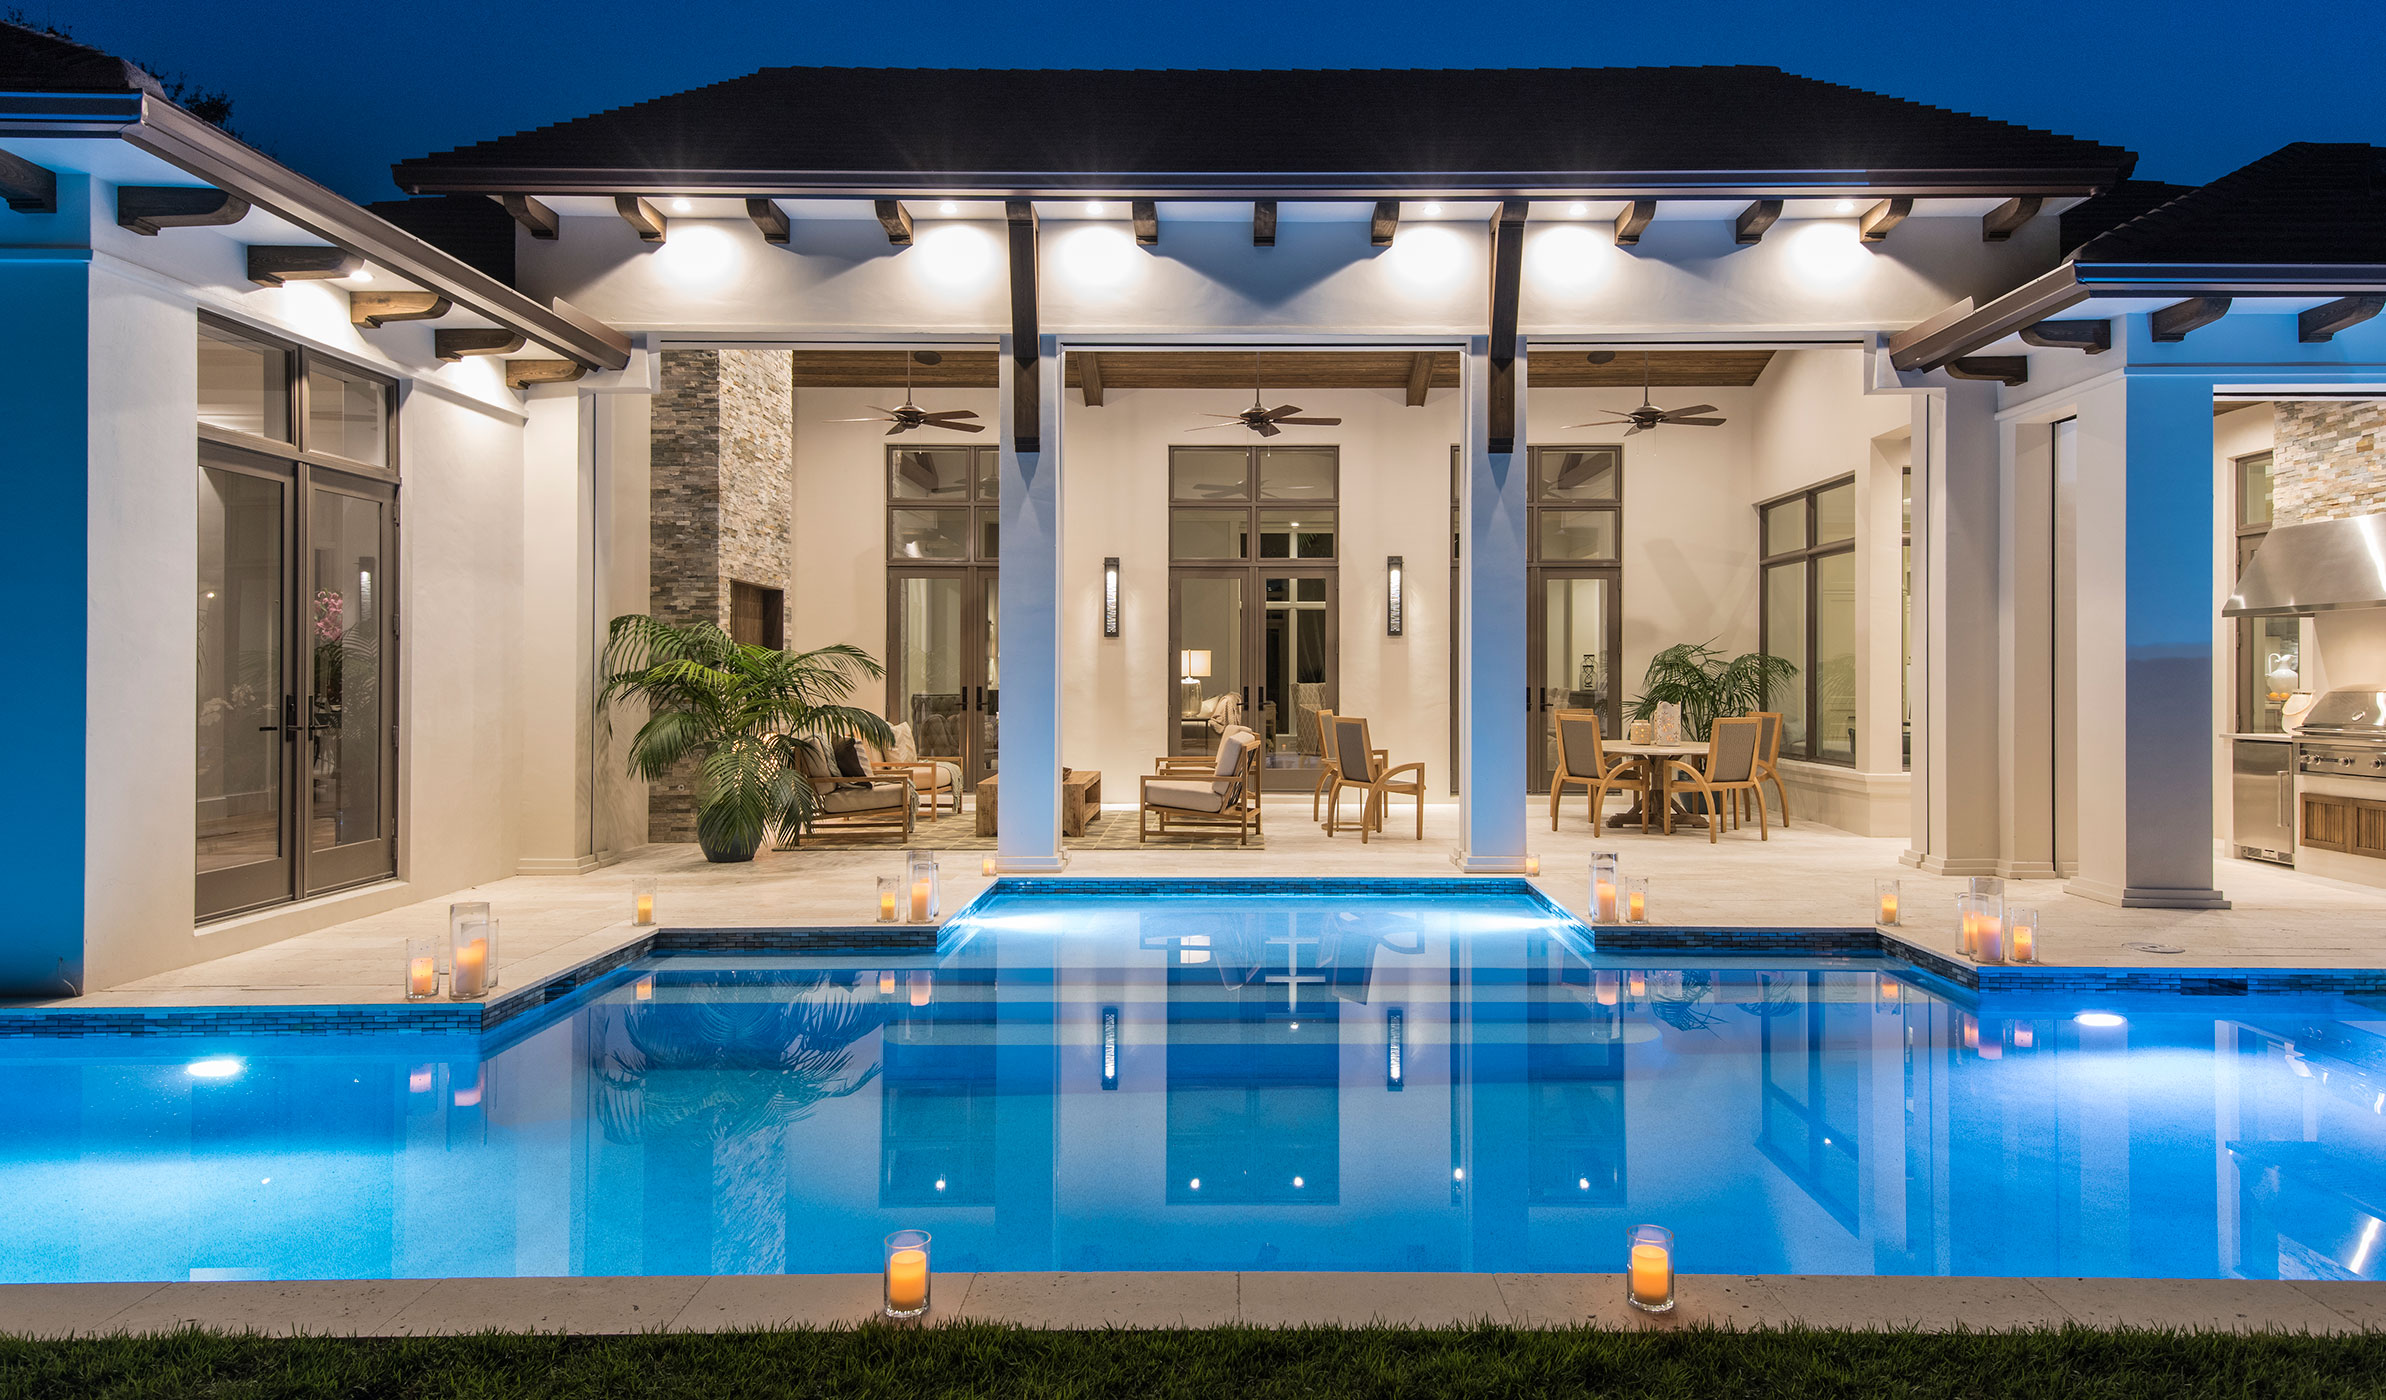 Calusa bay design interior design naples fl for Pool design naples fl